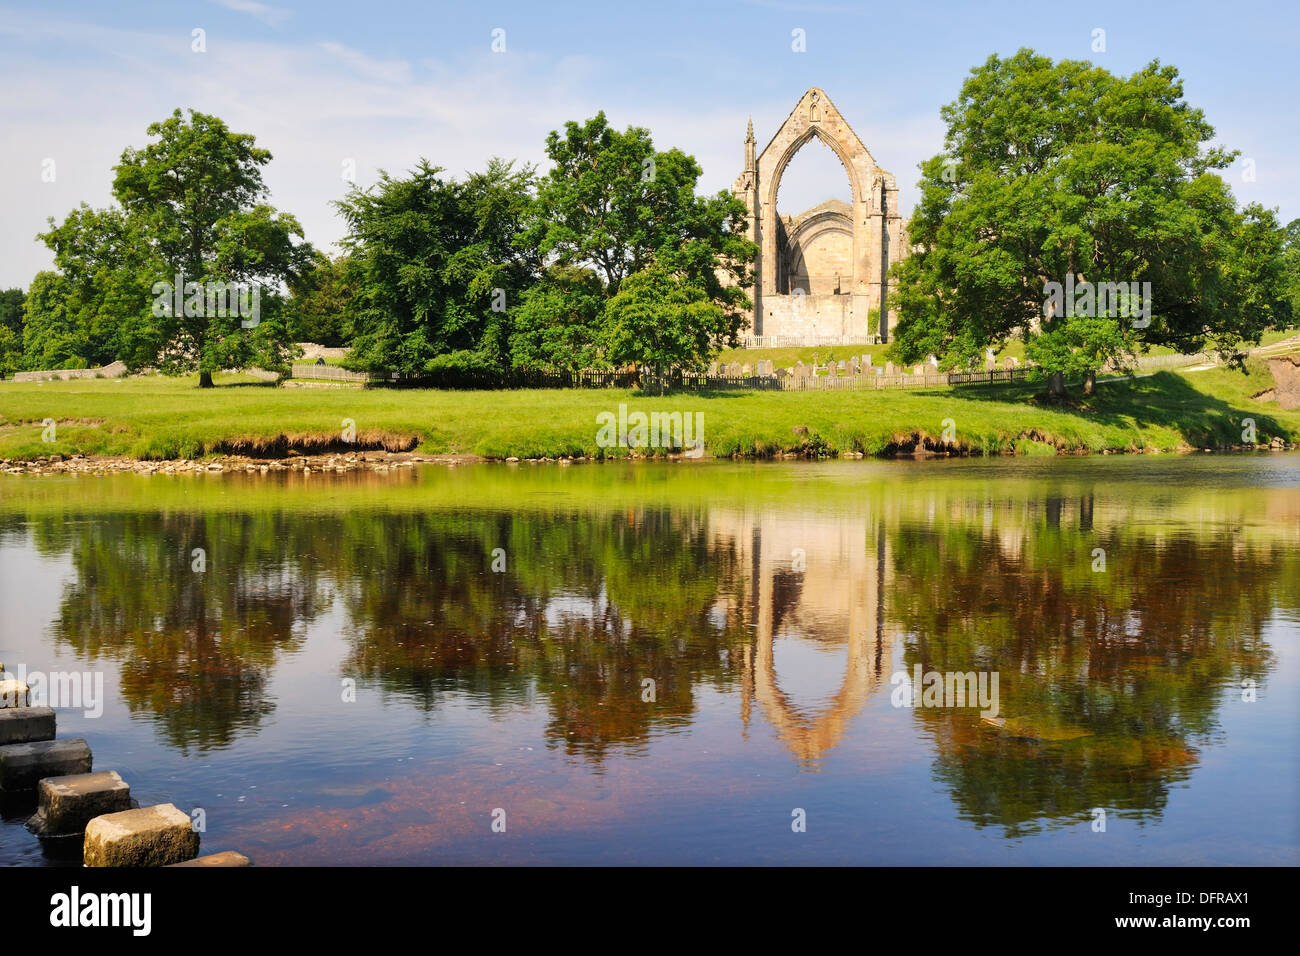 The ruins of Bolton Priory reflected in the River Wharfe, Bolton Abbey, Yorkshire Dales National Park, England Stock Photo